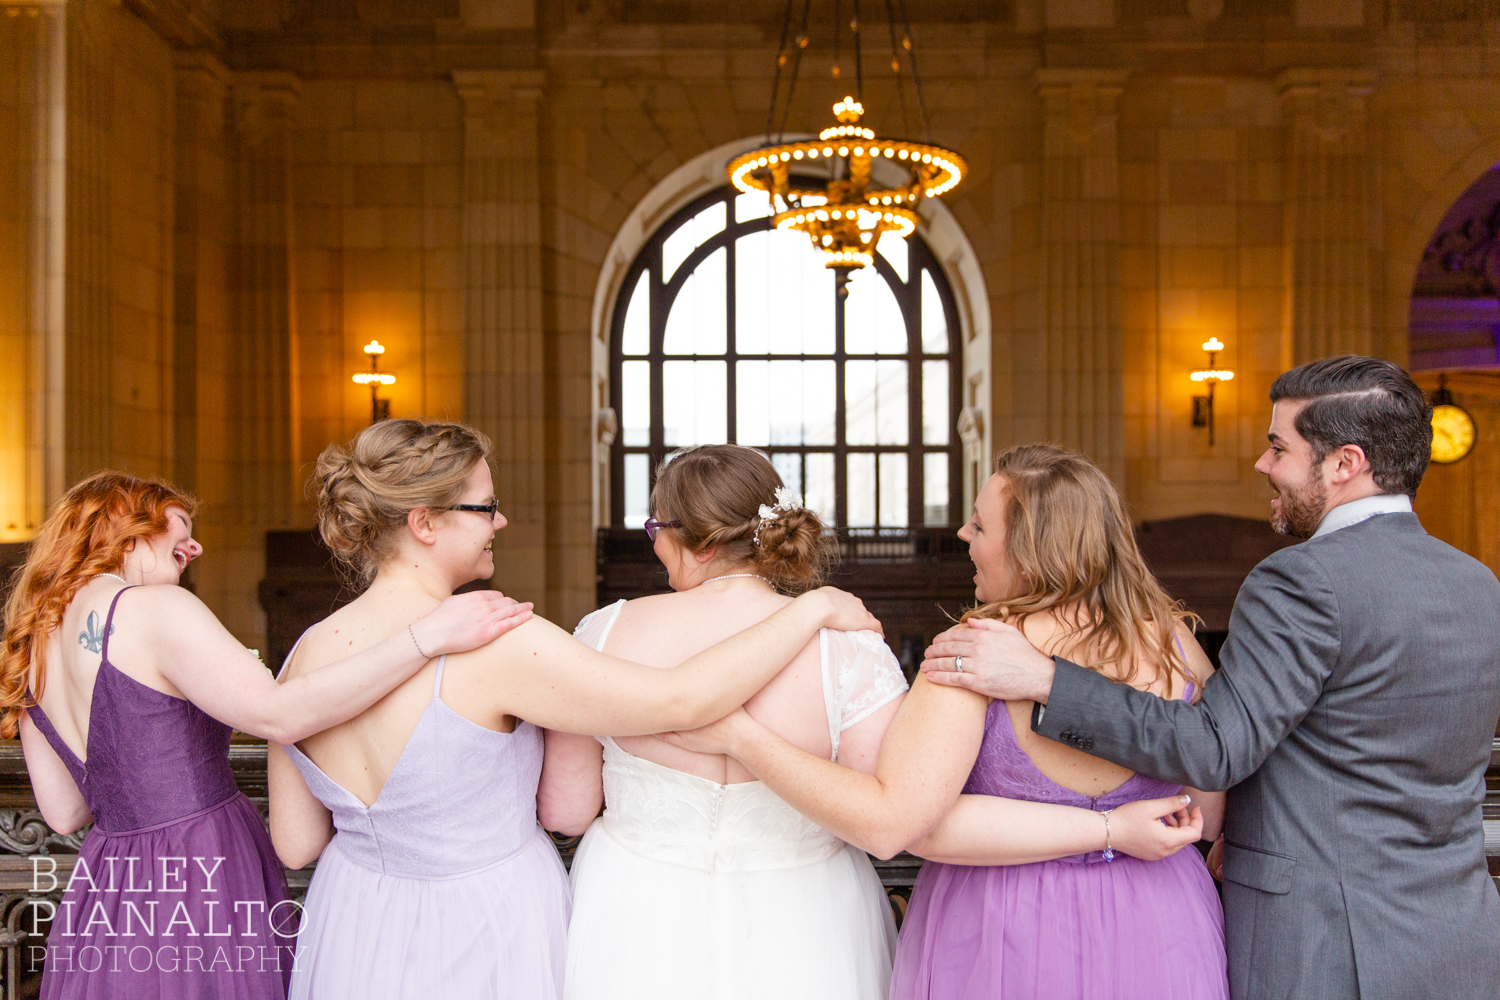 Bridesmaid Portraits at Purple & Gray Down-to-Earth Spring Wedding  | Union Station | Kansas City, MO